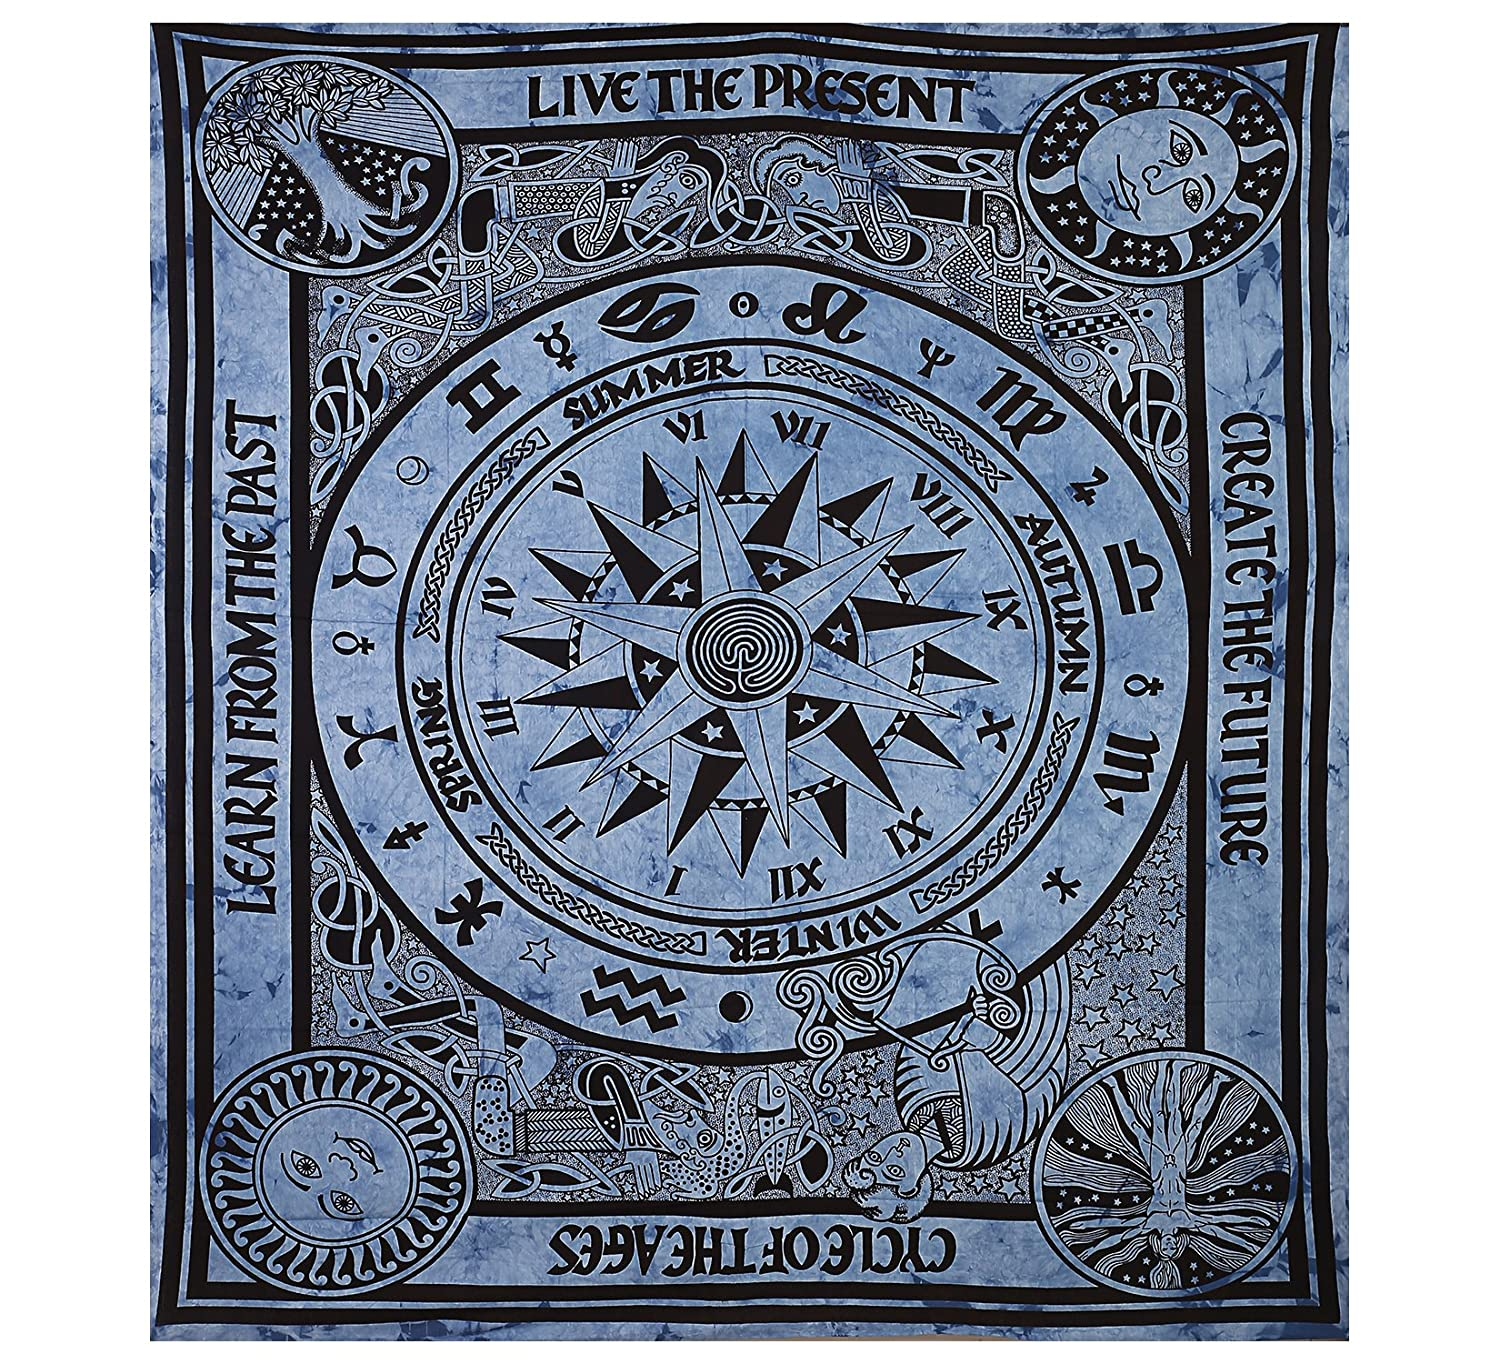 Gokul Handloom Indian Designs Cricle of Age Live The Present Wall Hanging Tapestry Bohemain Home Decor Blue Color Cotton Tapestry Large Big Size Tapestry